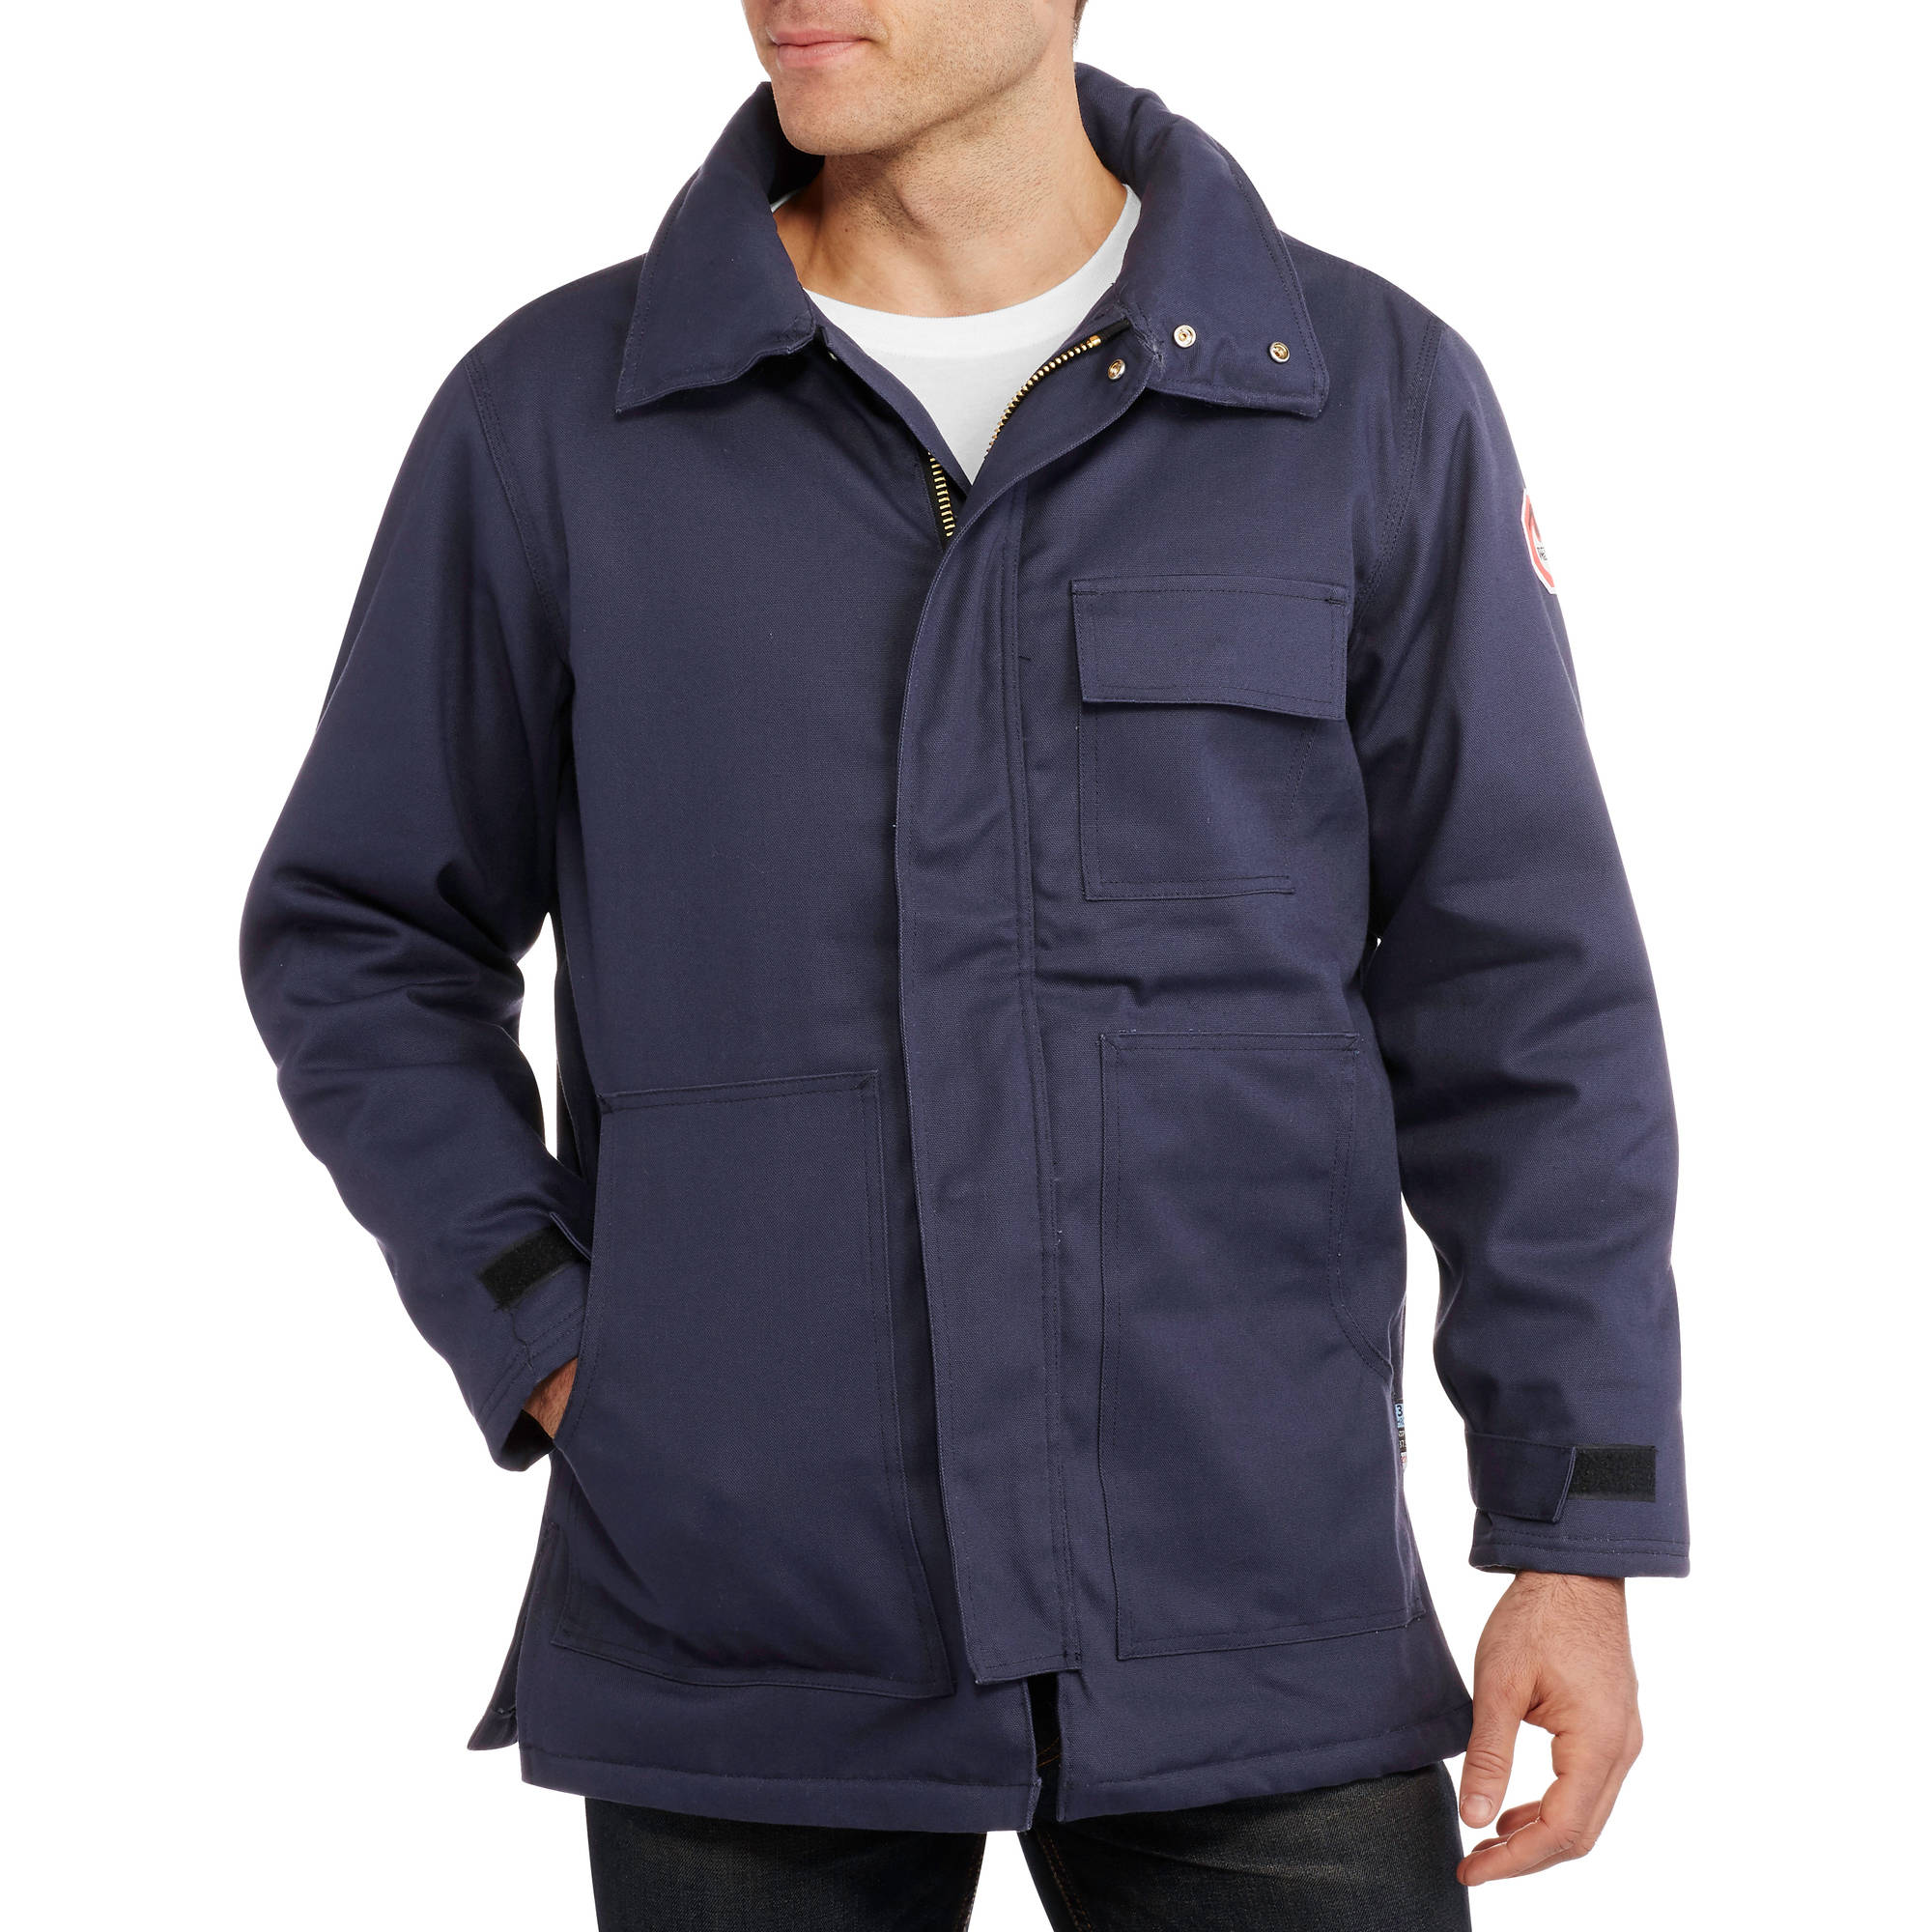 Walls FR Men's Insulated Chore Coat